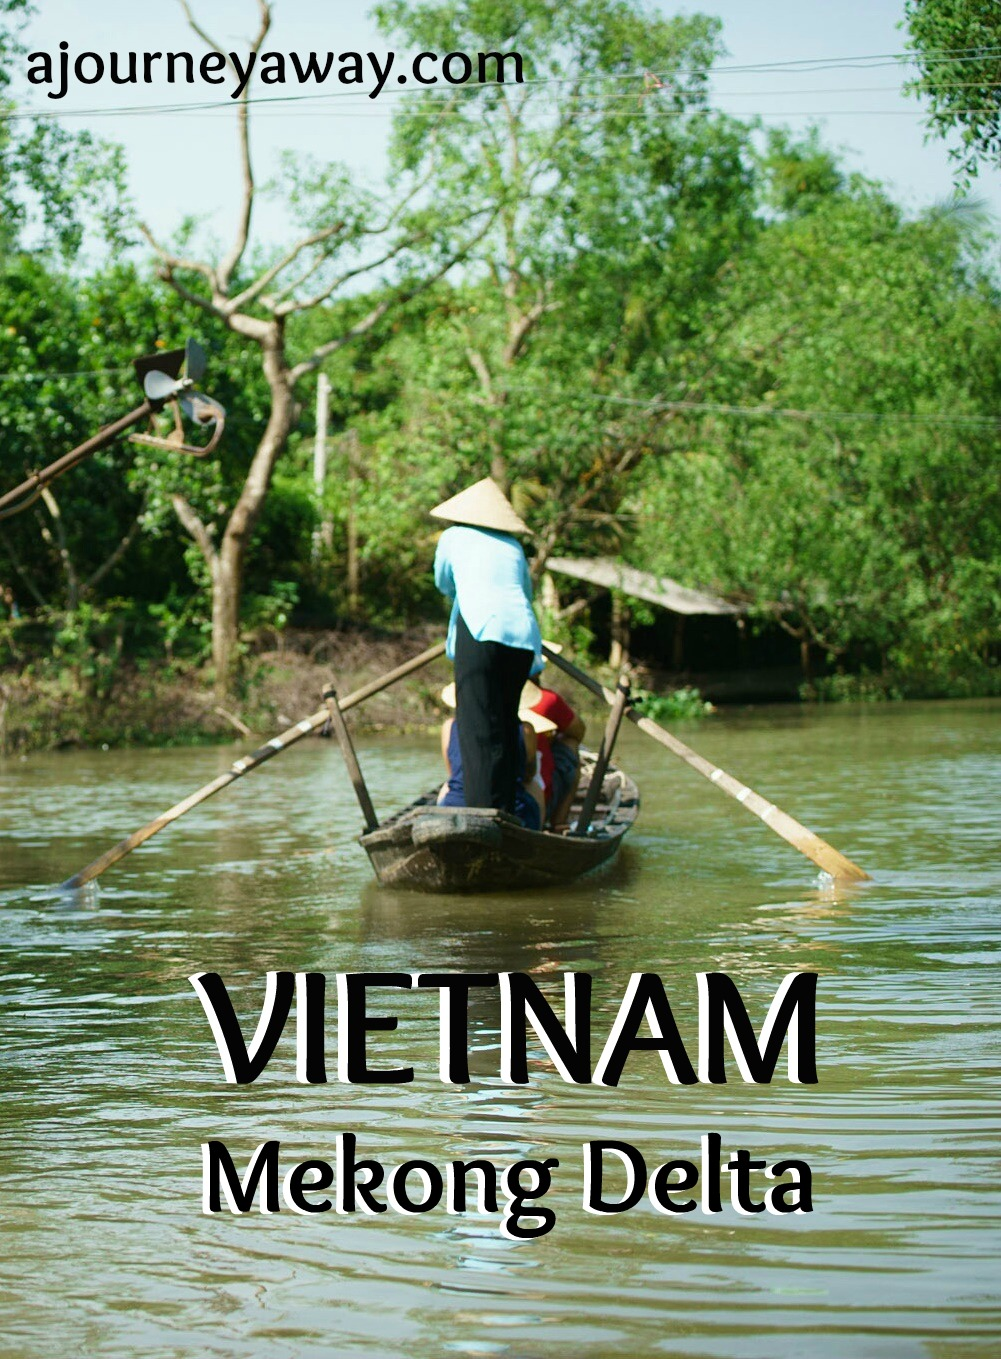 A trip to An Binh island, on the Mekong delta